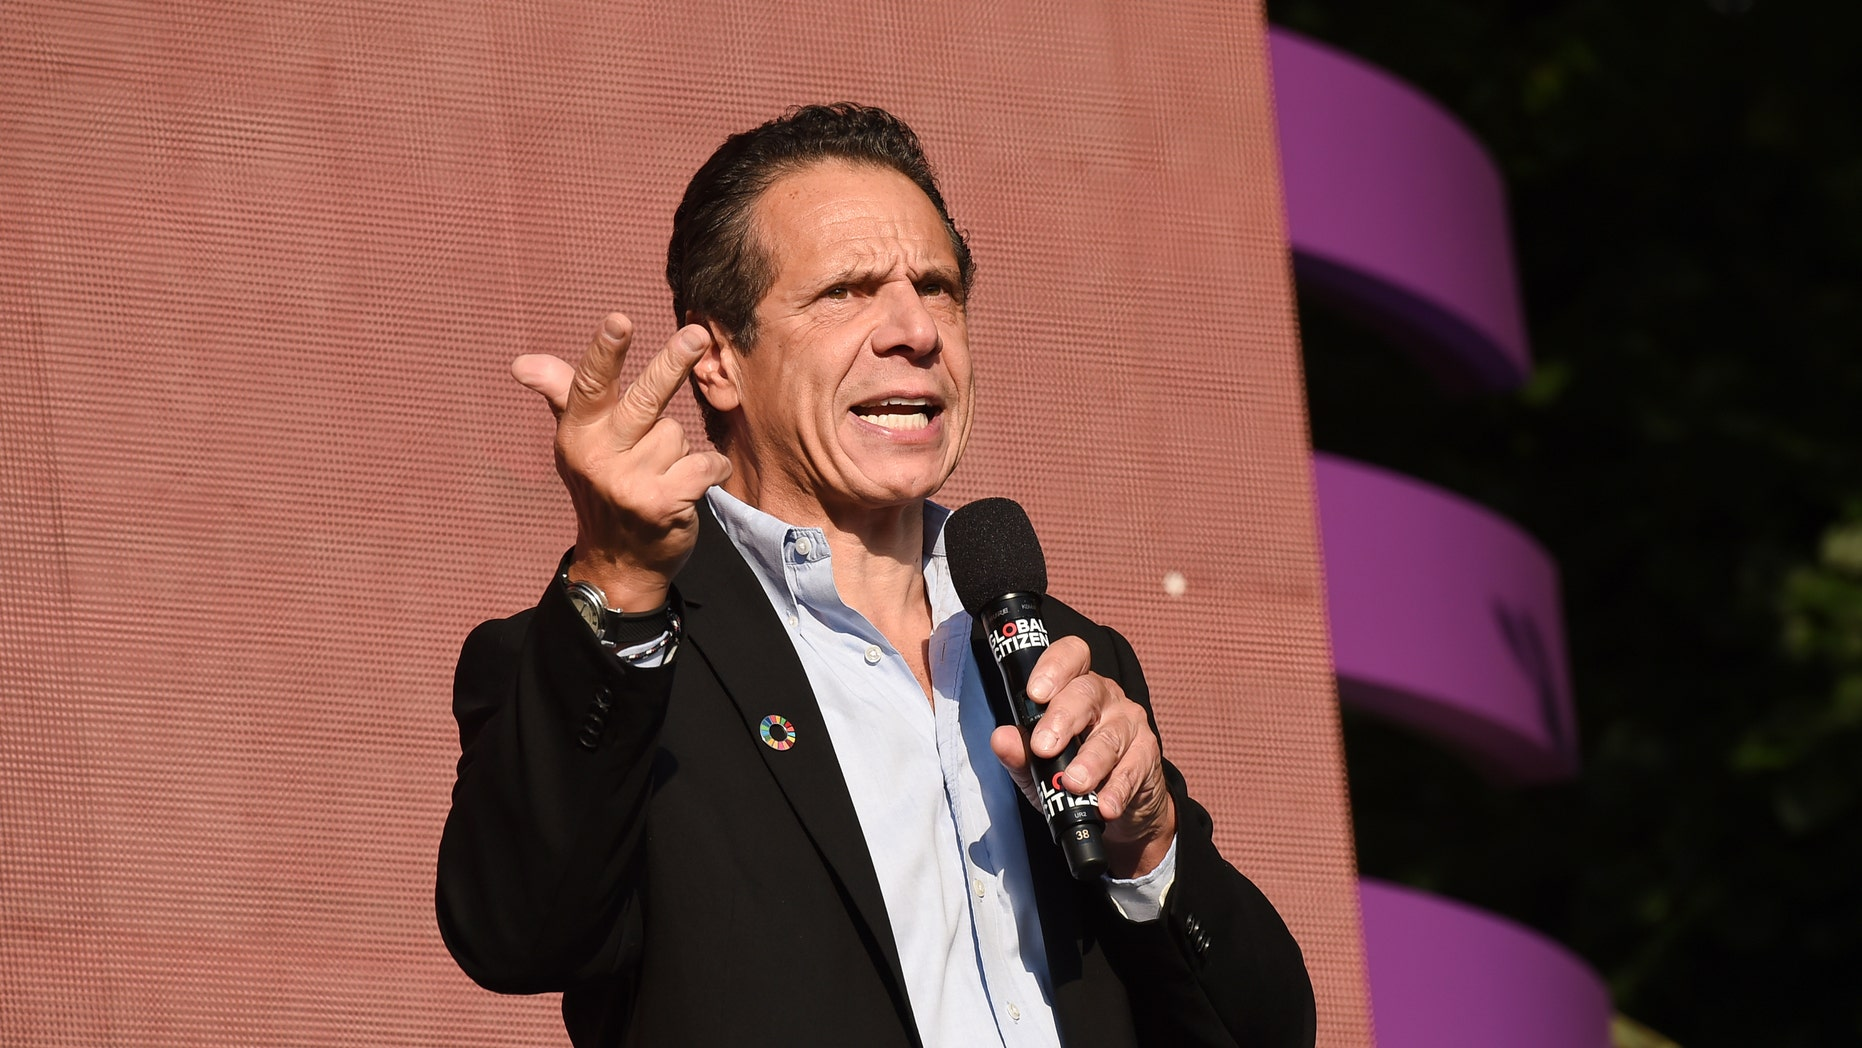 The widow of a slain police officer is attacking New York Gov. Andrew Cuomo in a new campaign ad over the parole and voting rights restoration of the man convicted of murdering her husband and his partner. (Photo by Evan Agostini/Invision/AP)